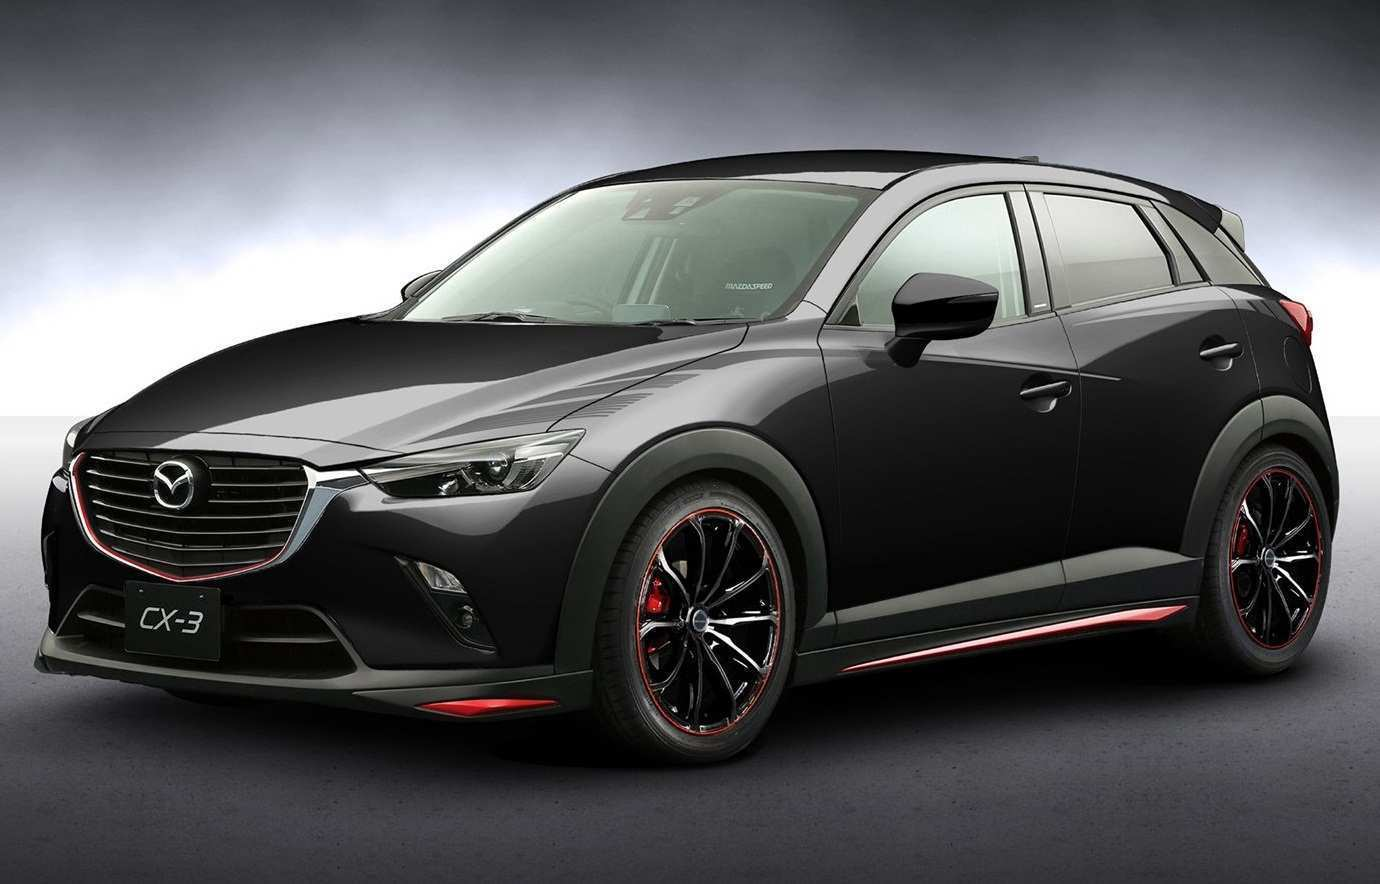 88 All New New Precio Cx3 Mazda 2019 Rumors Model with New Precio Cx3 Mazda 2019 Rumors